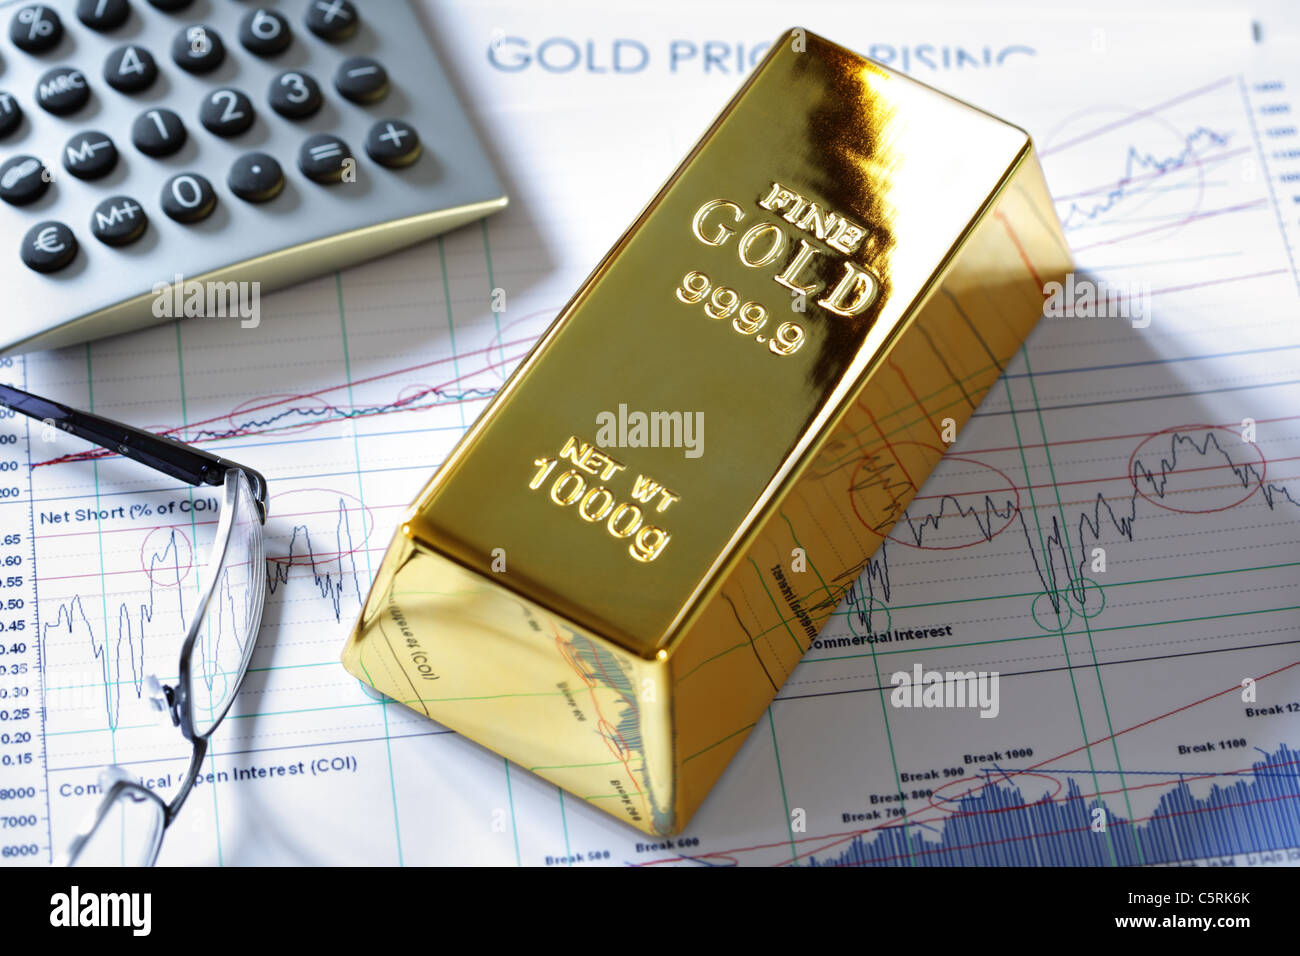 Gold bullion barr on a stocks and shares chart - Stock Image